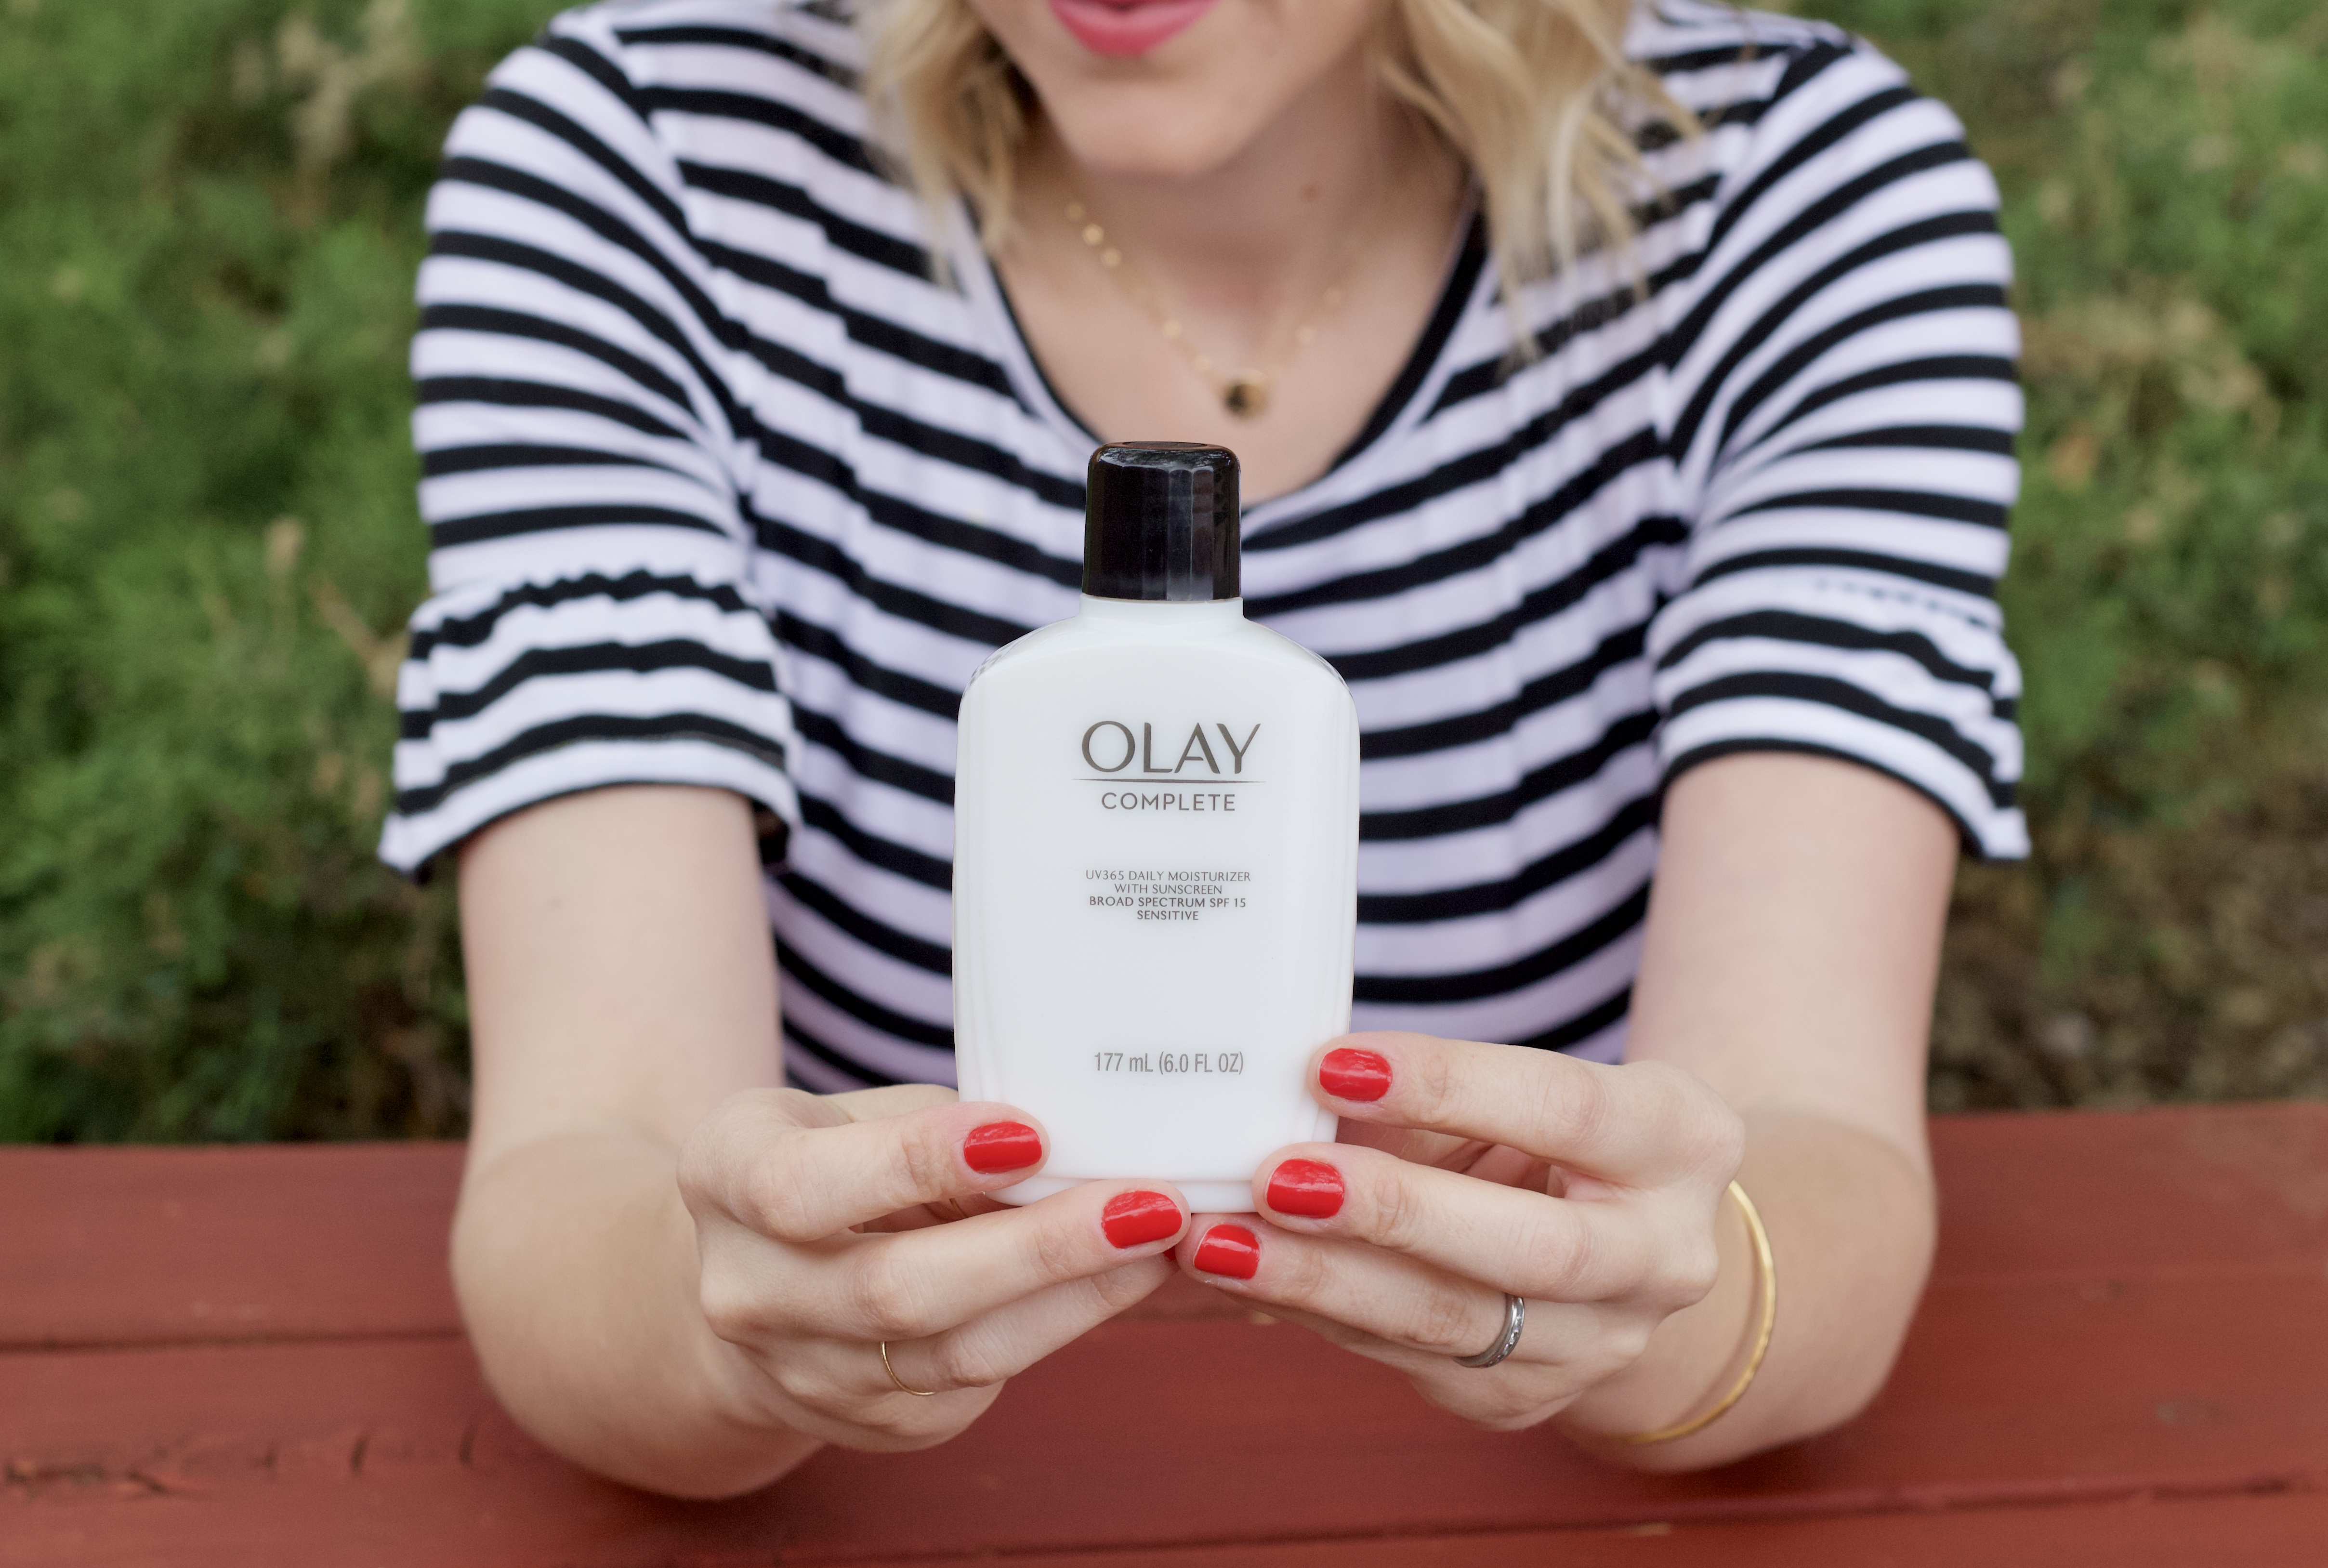 olay all day daily moisturizer review #olay #sunprotection #skincare #affordableskincare